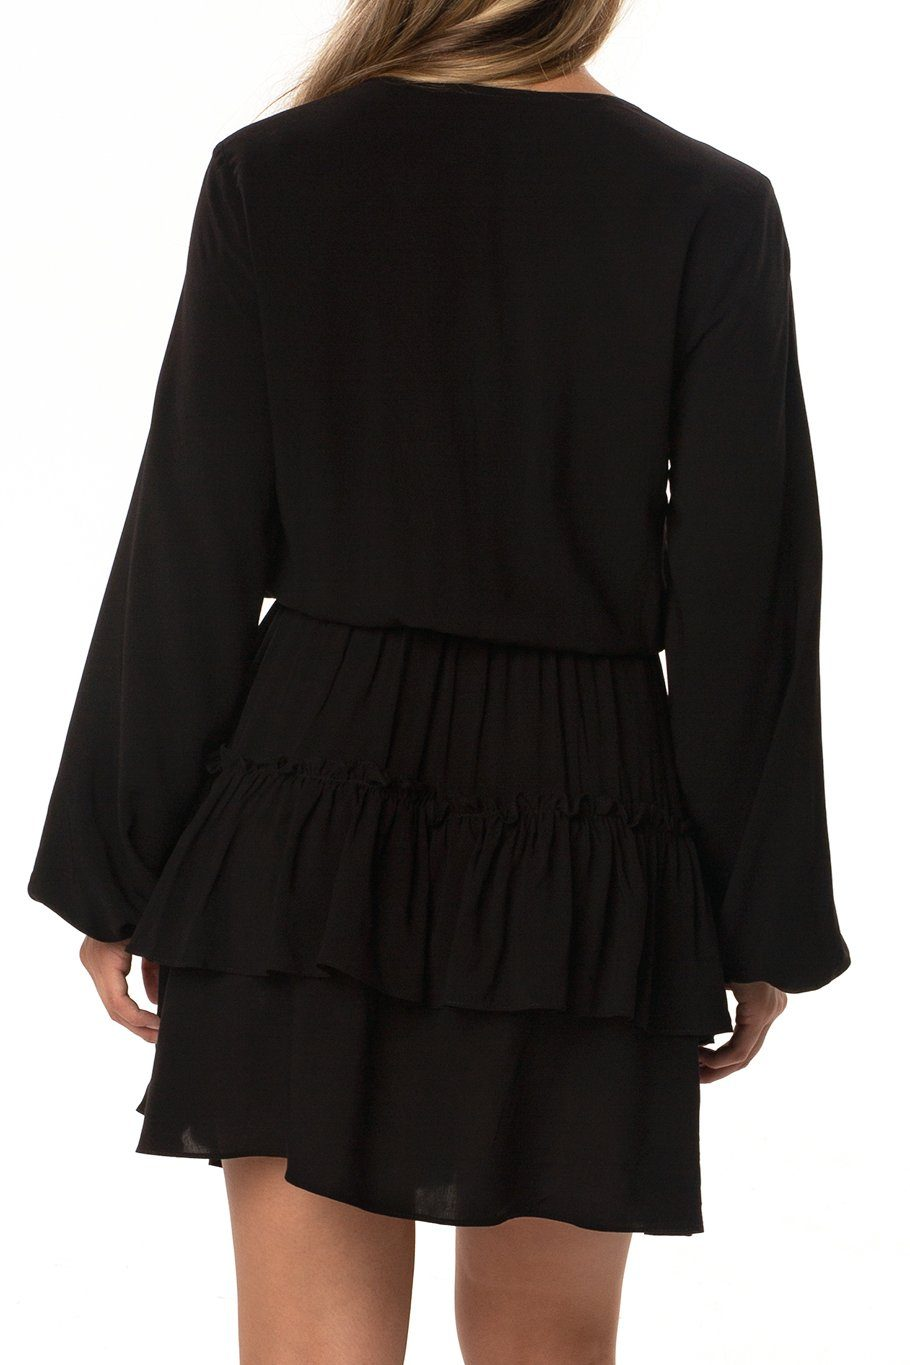 Valencia Dress - Black - Shore